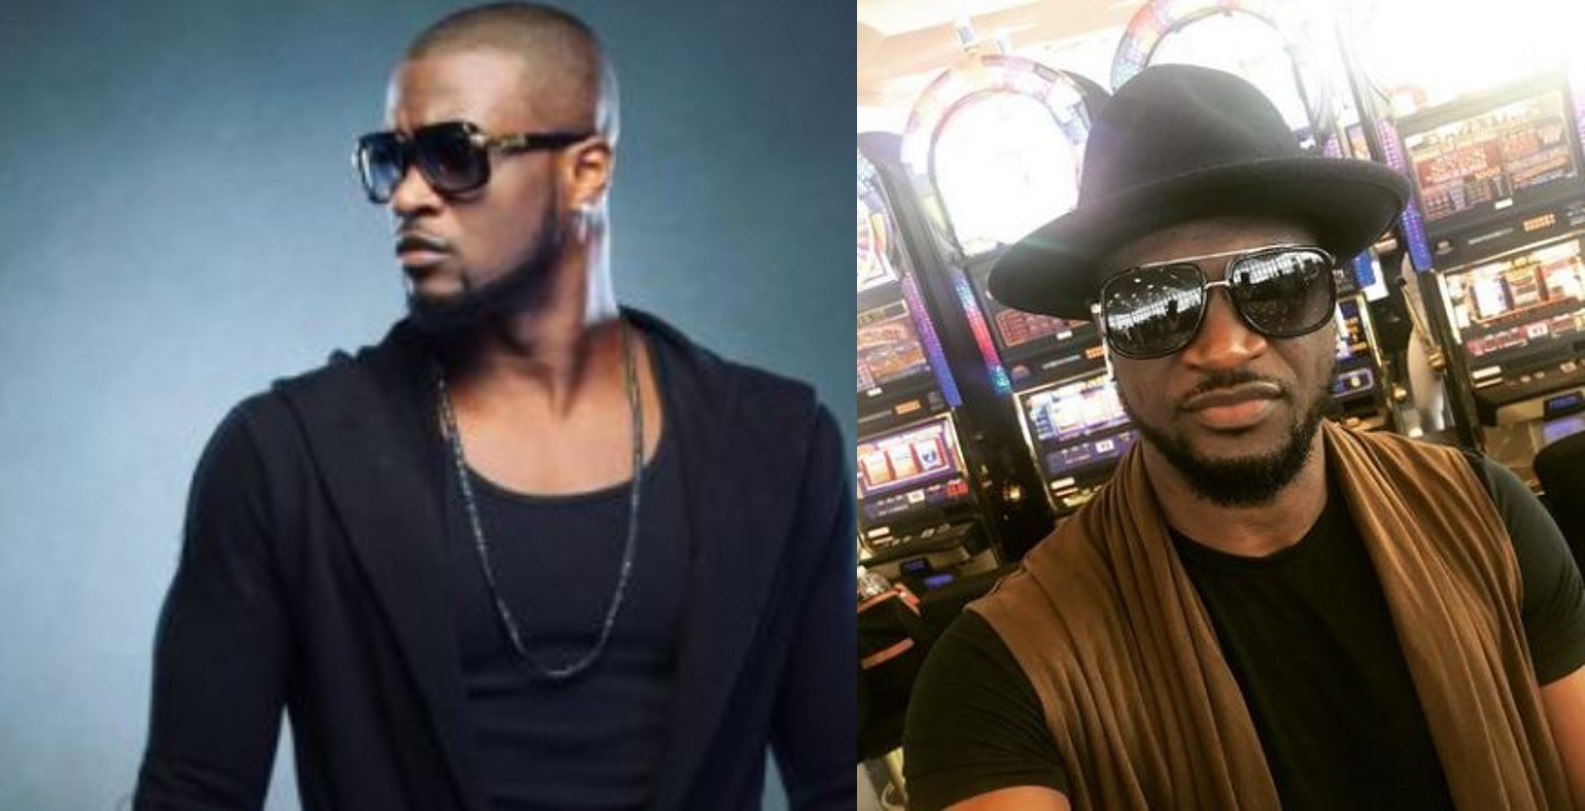 10 cool pictures of Peter Okoye (Mr P)